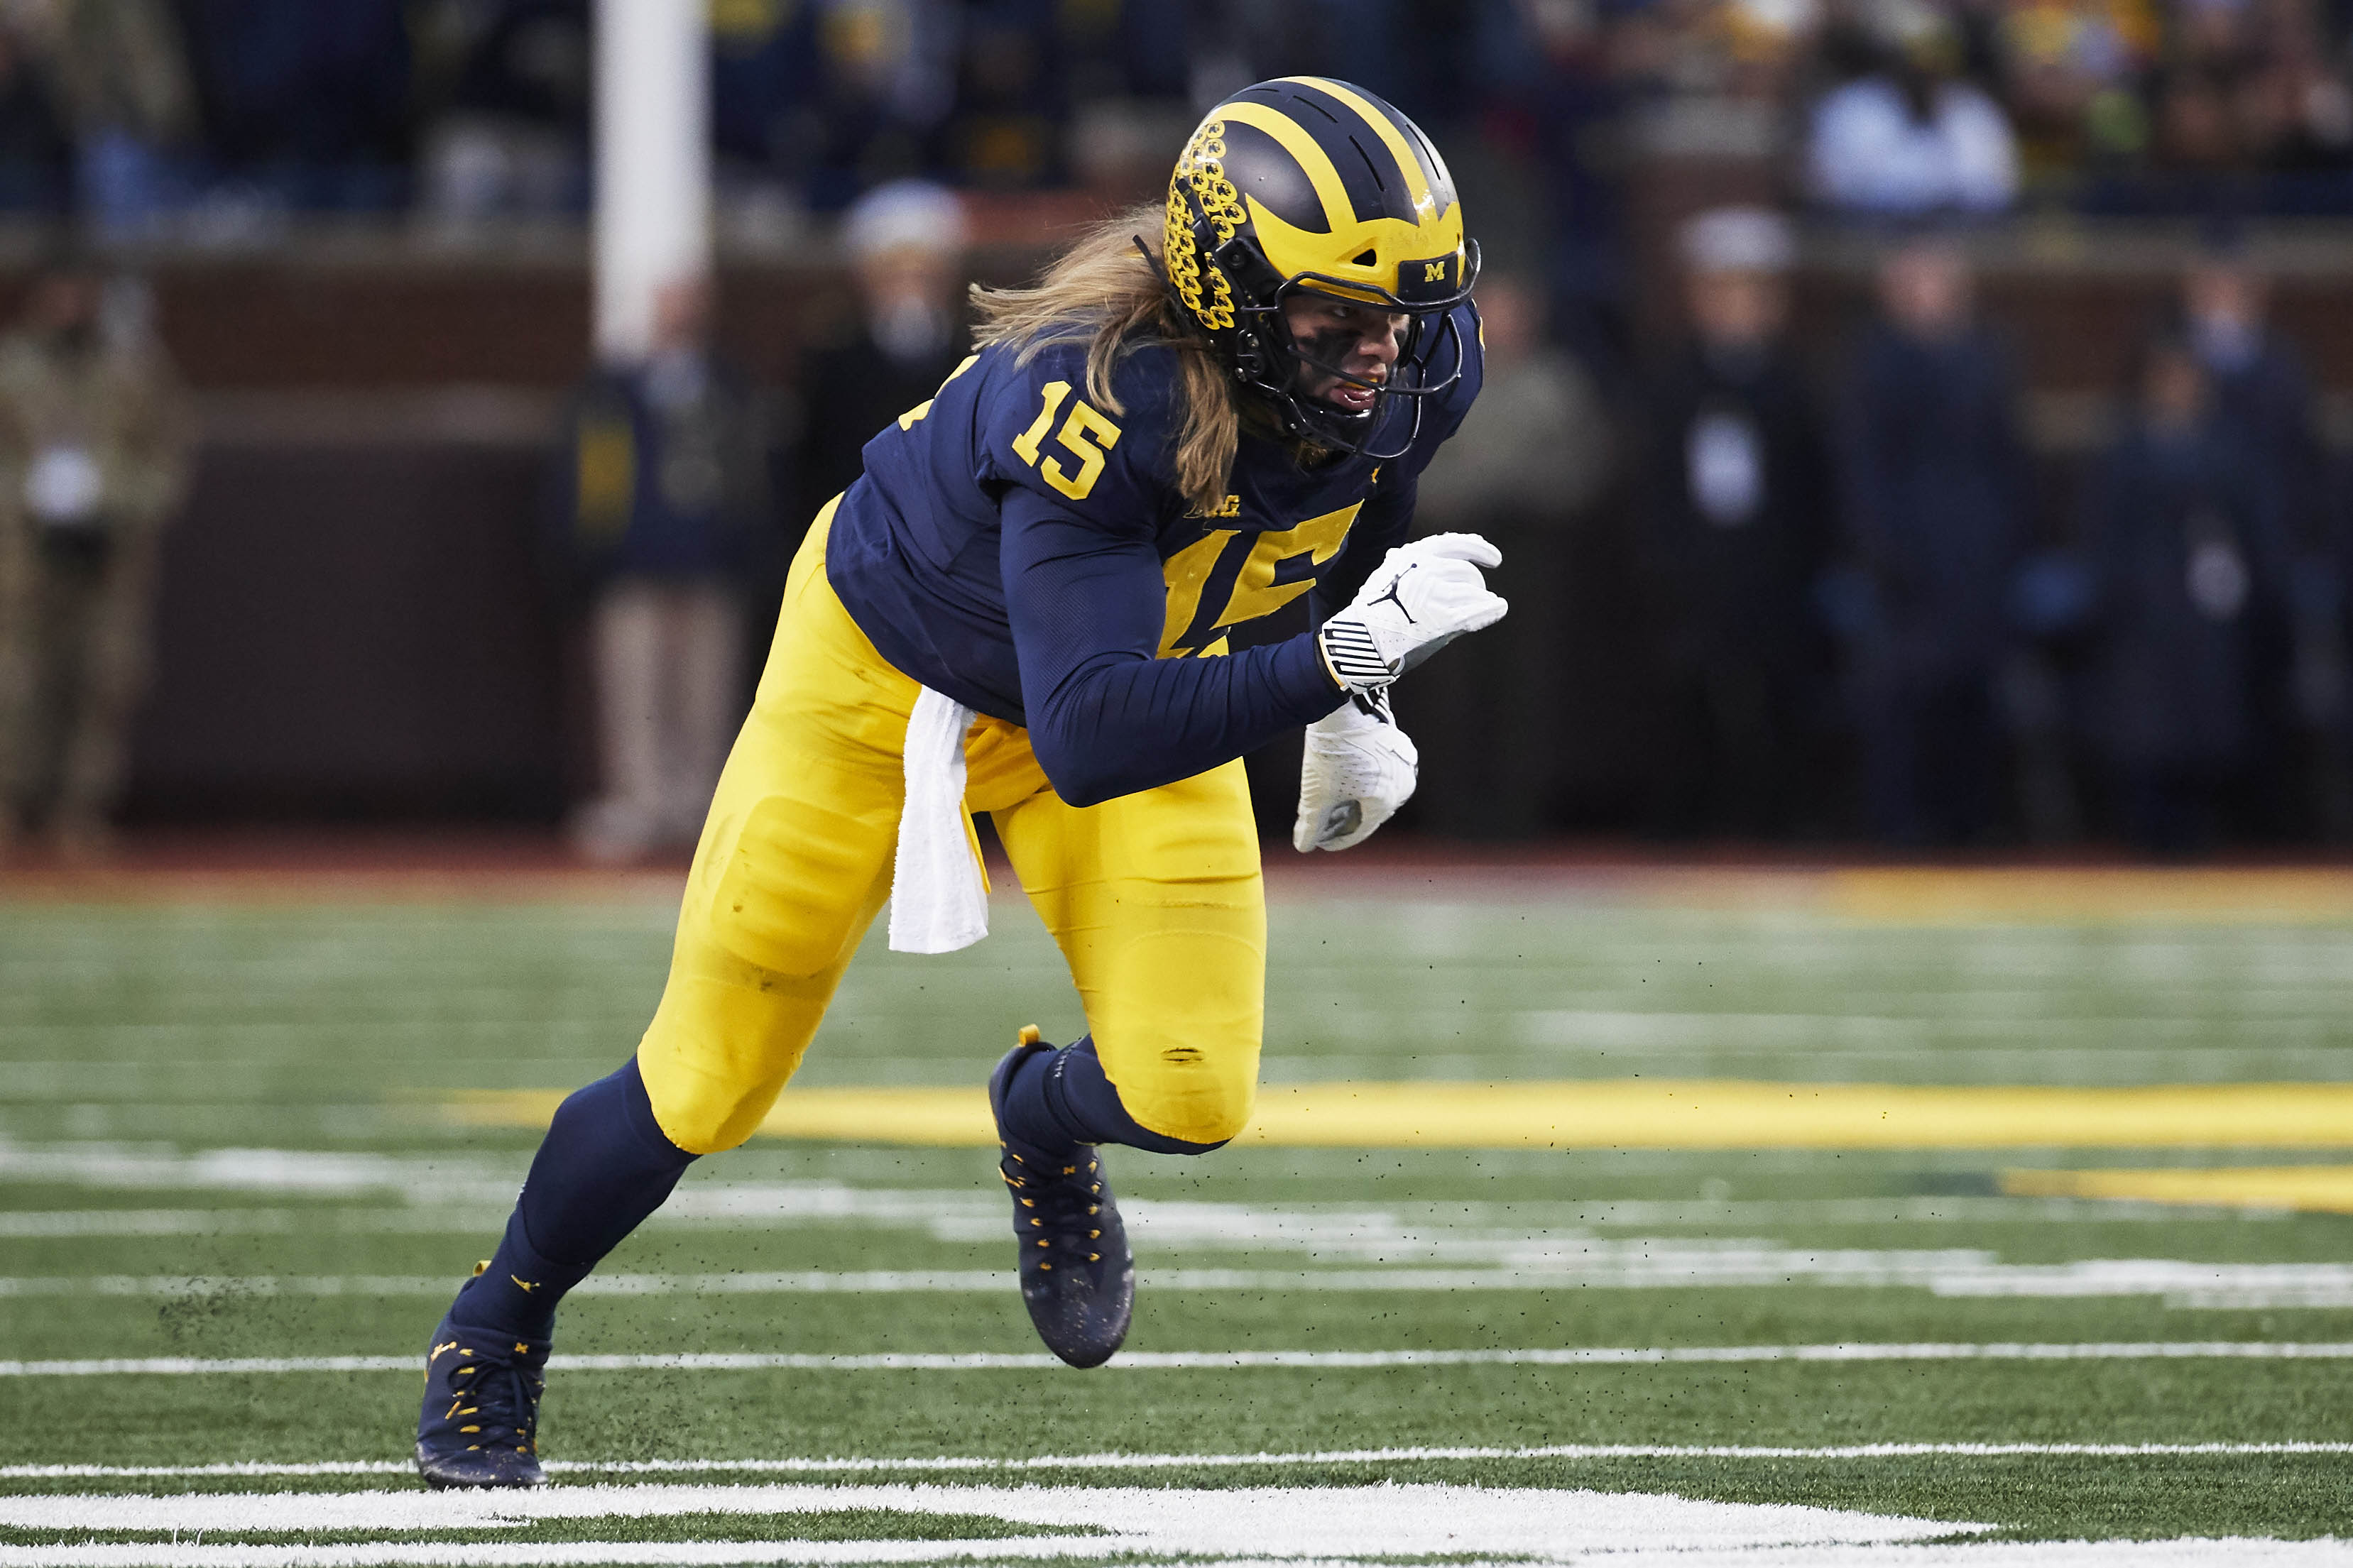 Film room scouting report on Chase Winovich. The Panthers need ... f083e3533